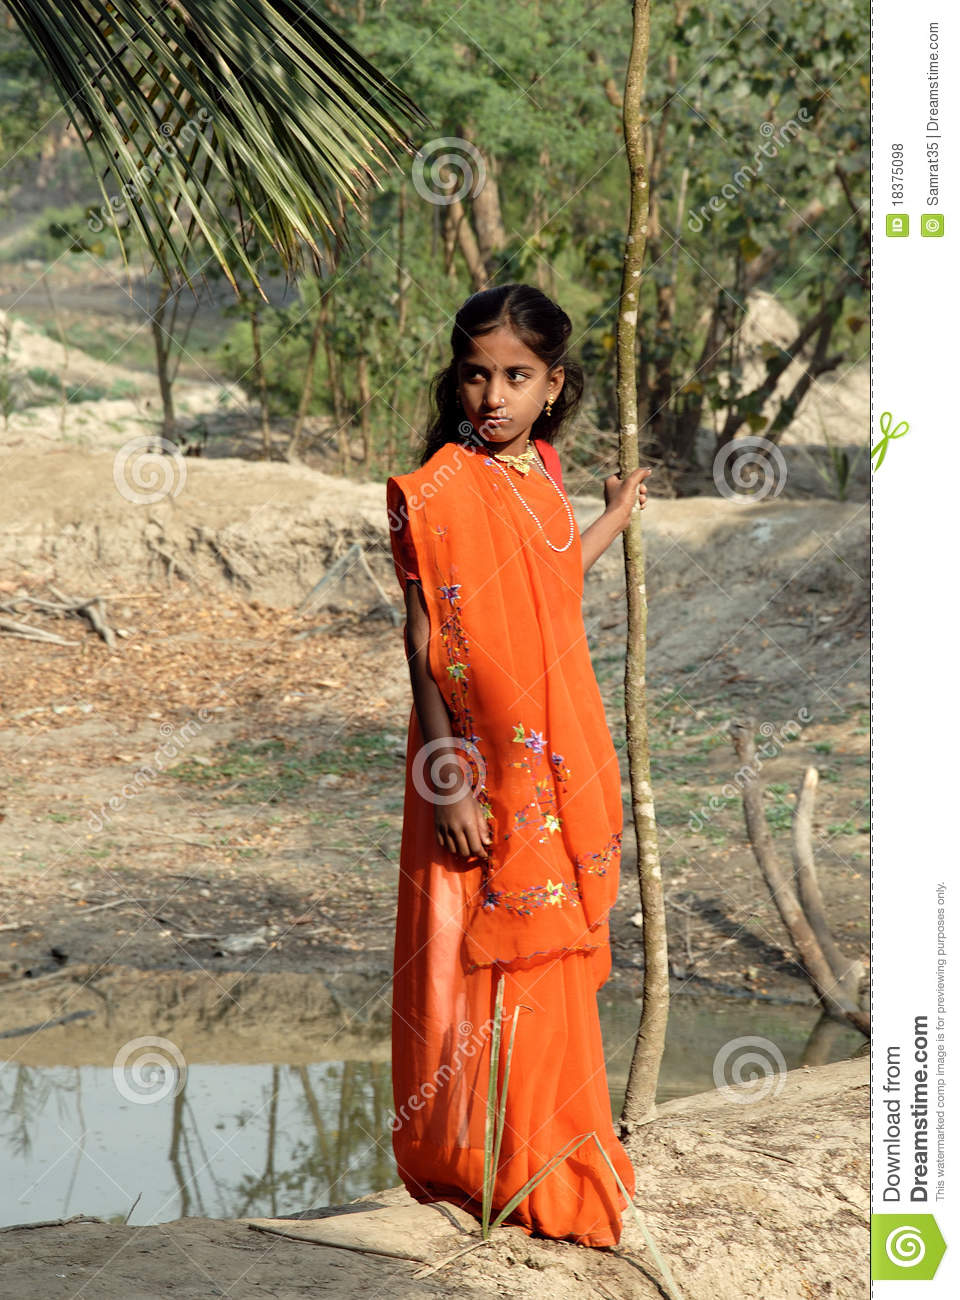 Adolescents Girl In Rural India Editorial Stock Photo -7435